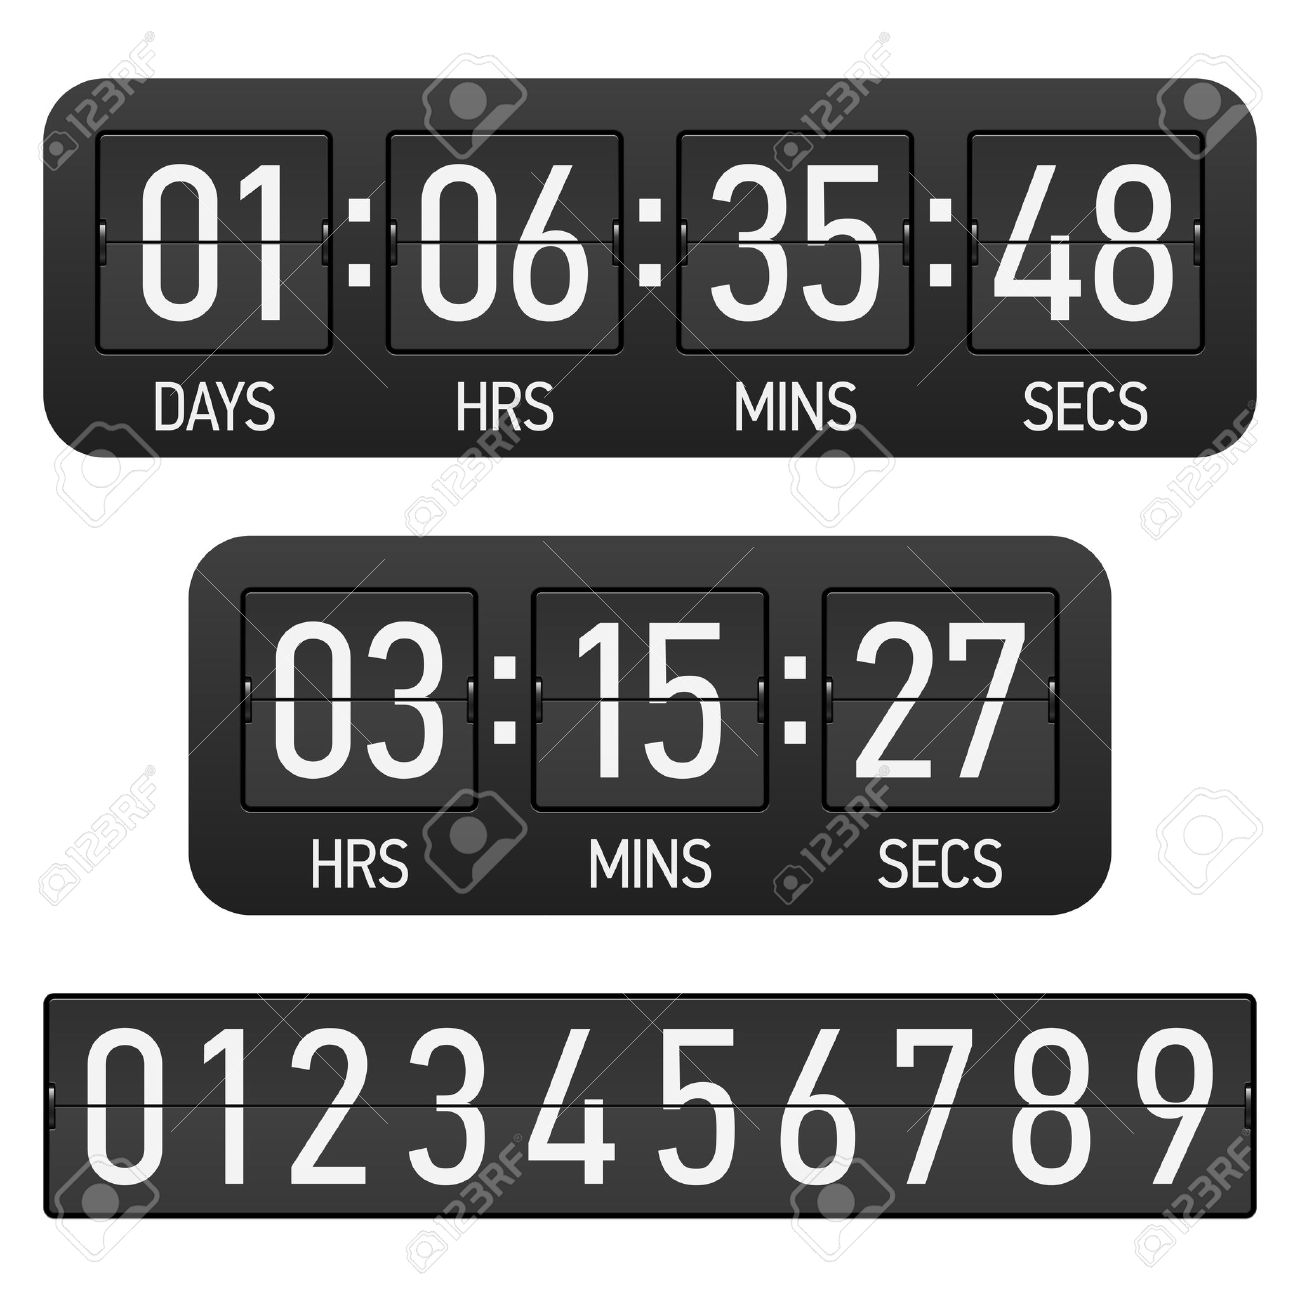 Countdown timer clipart freeuse Countdown Timer Royalty Free Cliparts, Vectors, And Stock ... freeuse